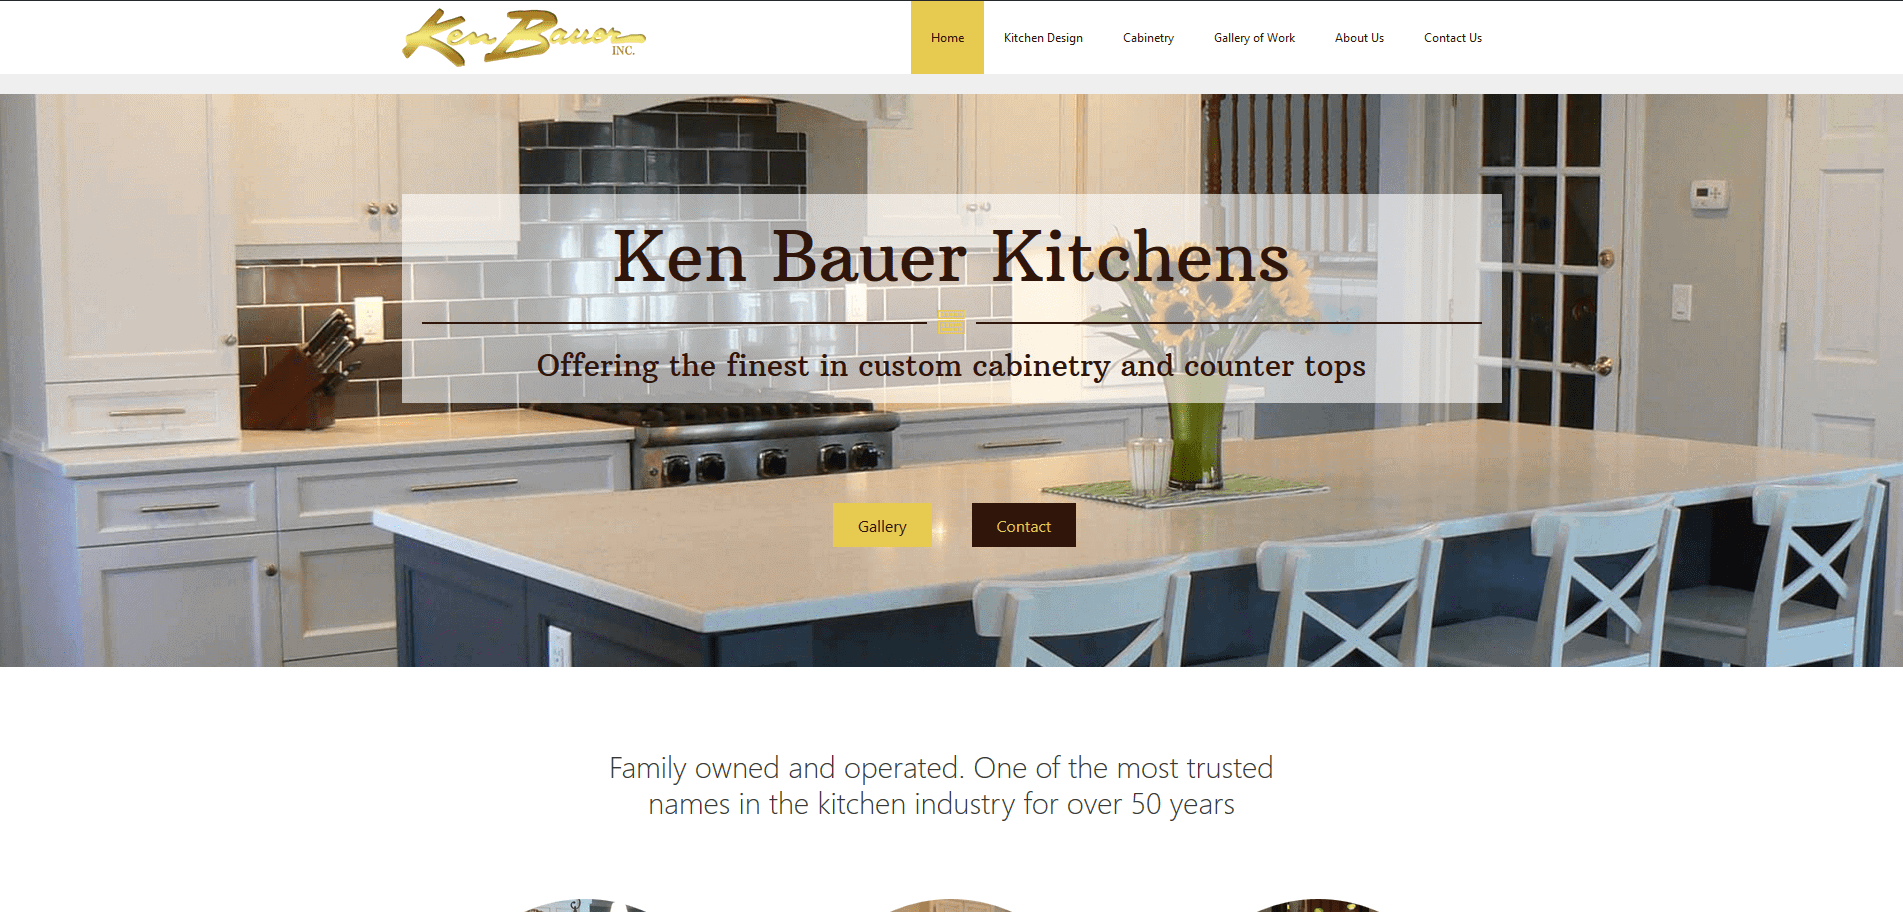 Ken Bauer Kitchens